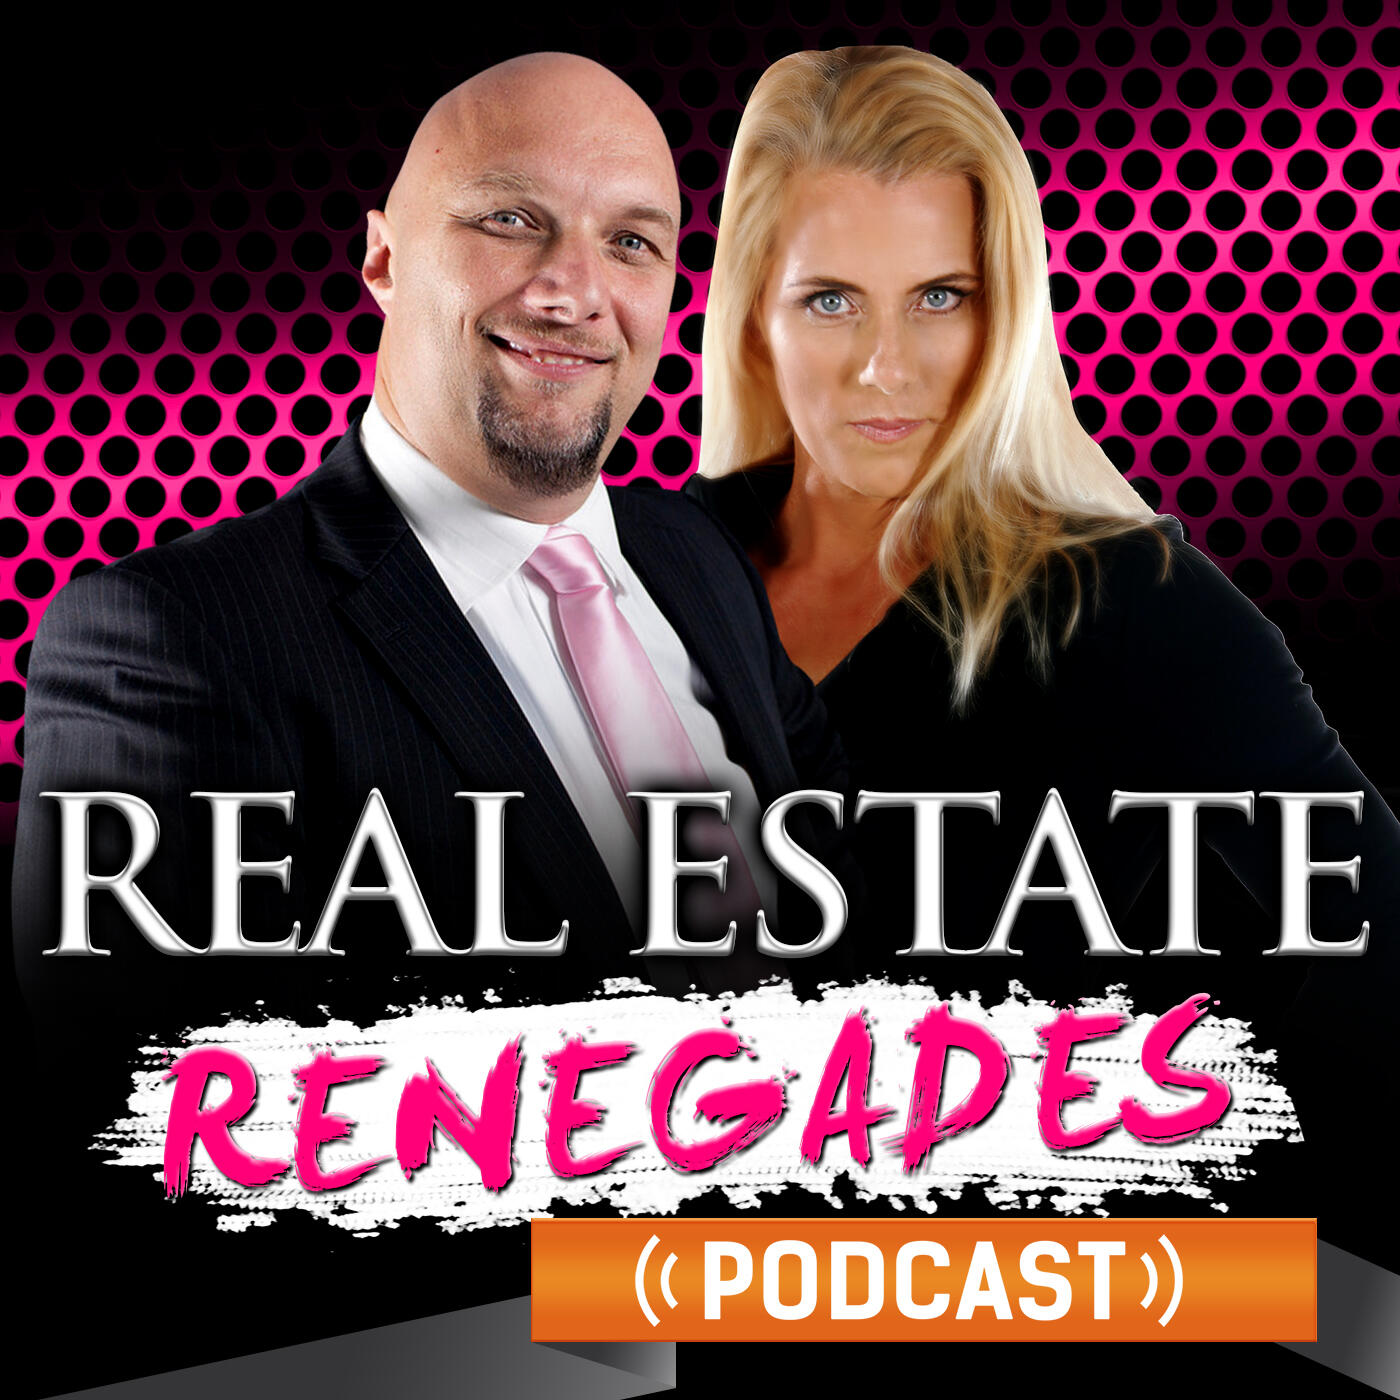 Real Estate Renegades with Glenn Twiddle